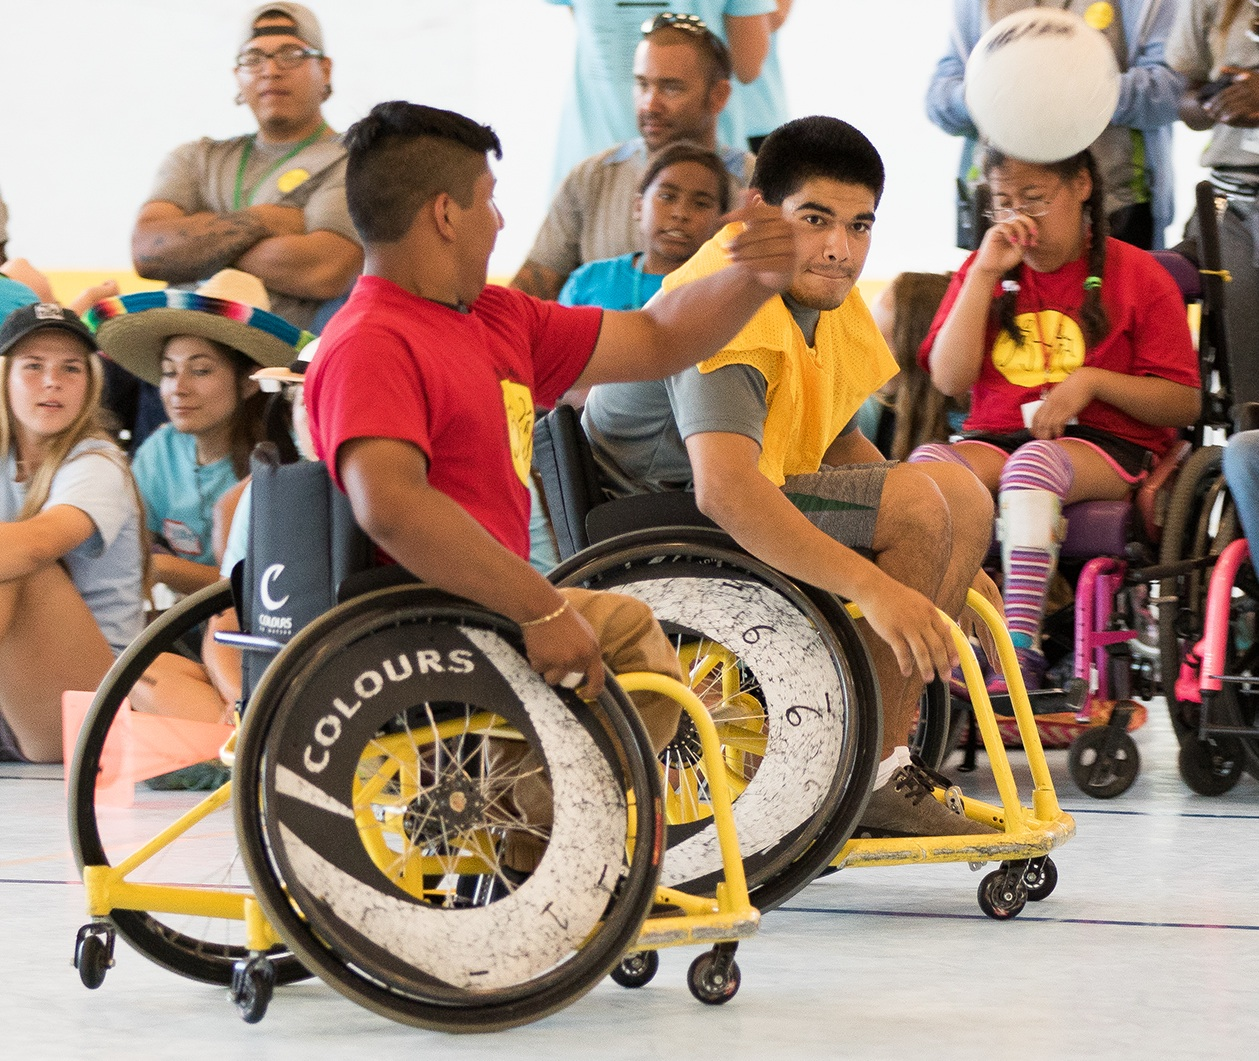 Jesus Alverado of the Junior Wheelchair Camp team throws a no-look pass while being chased by UCSB's David Cota.